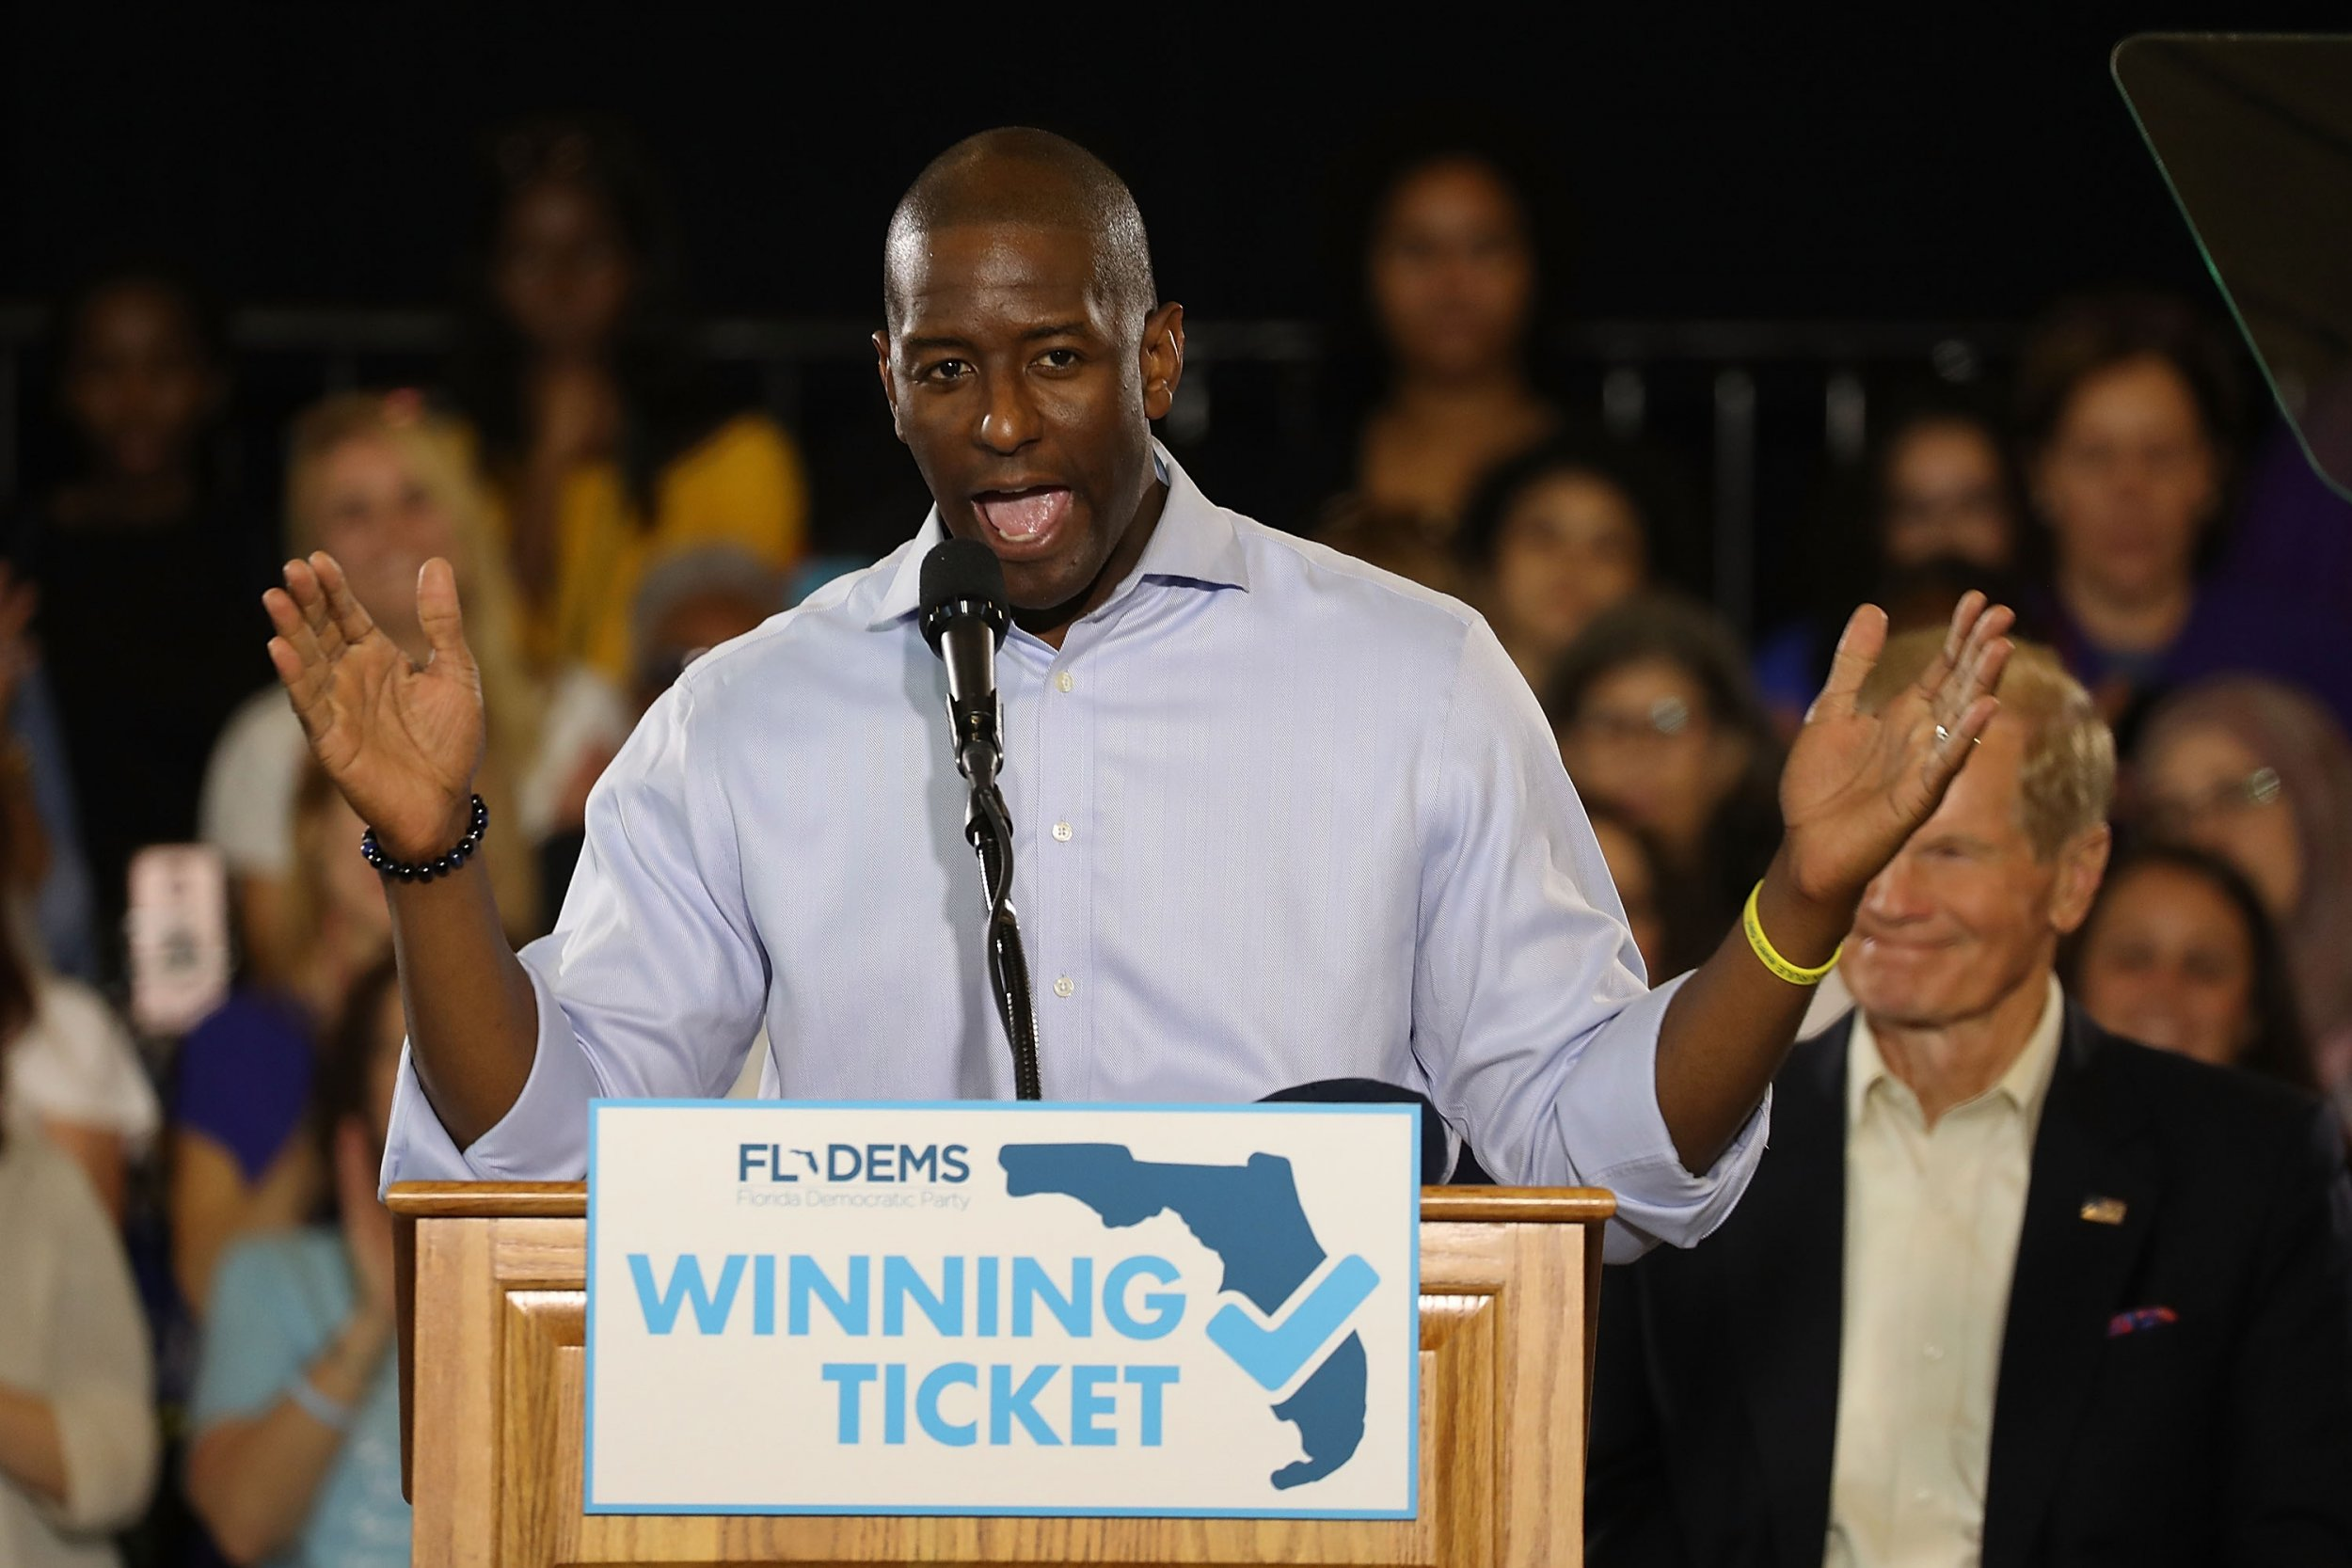 FBI Agents Gave Andrew Gillum Broadway Tickets, Contrary to What He's Past Claimed: Reports